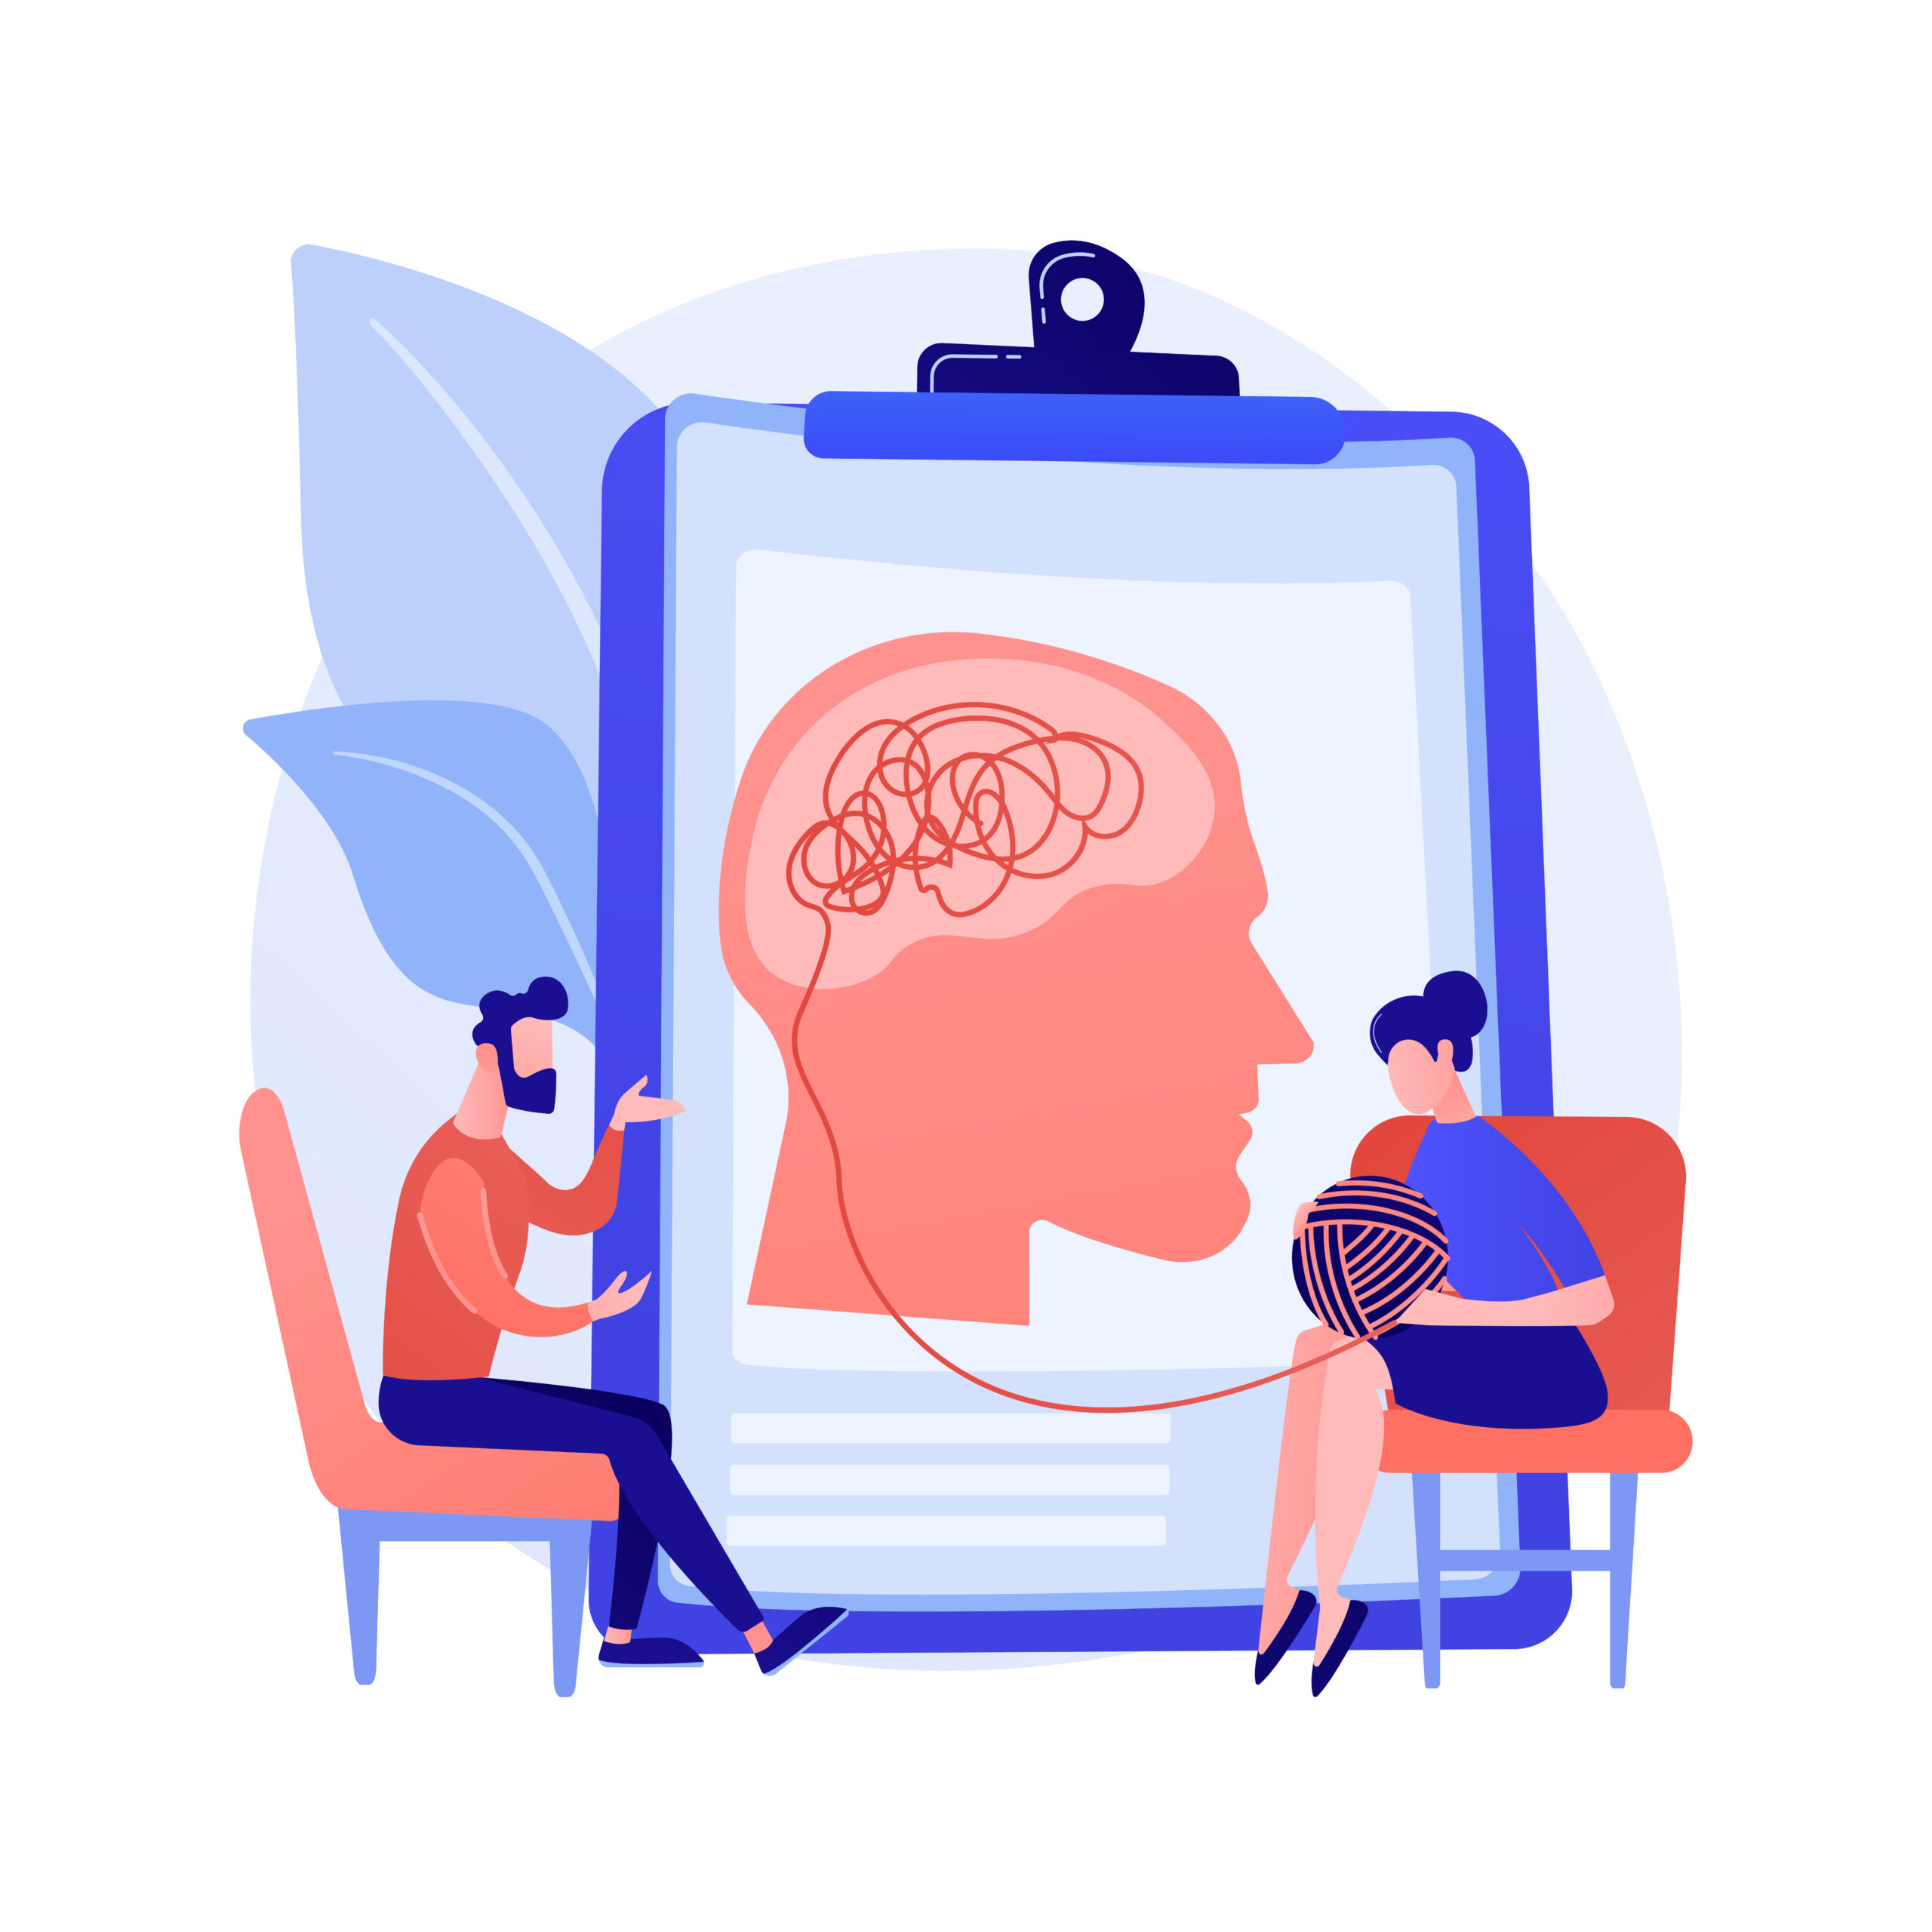 Psychotherapy abstract concept vector illustration. Non pharmacological intervention, verbal counseling, psychotherapy service, behavioral cognitive therapy, private session abstract metaphor.